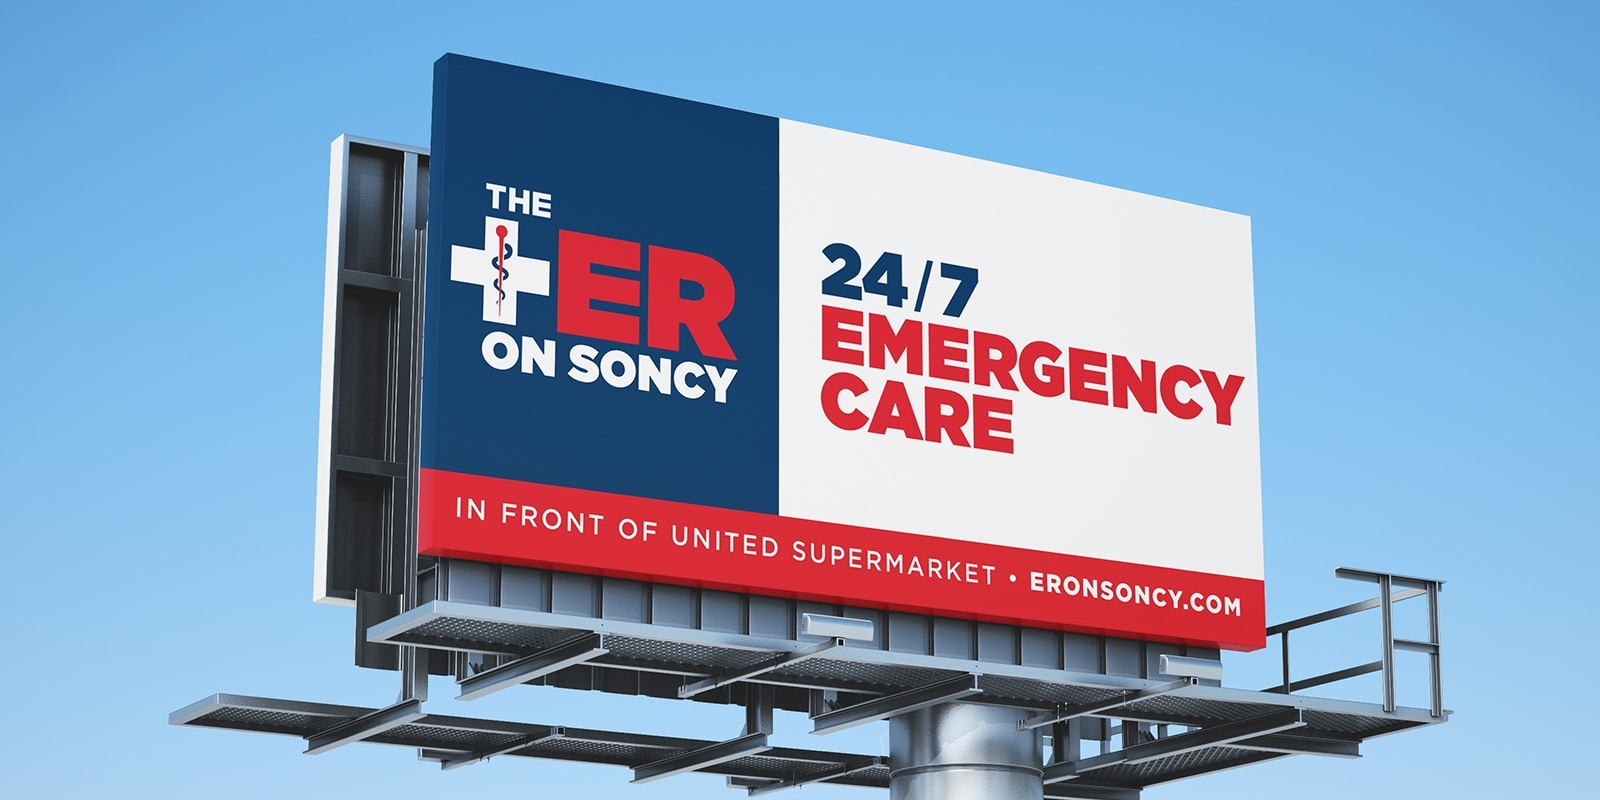 The Er on soncy Emergency Room amarillo Texas